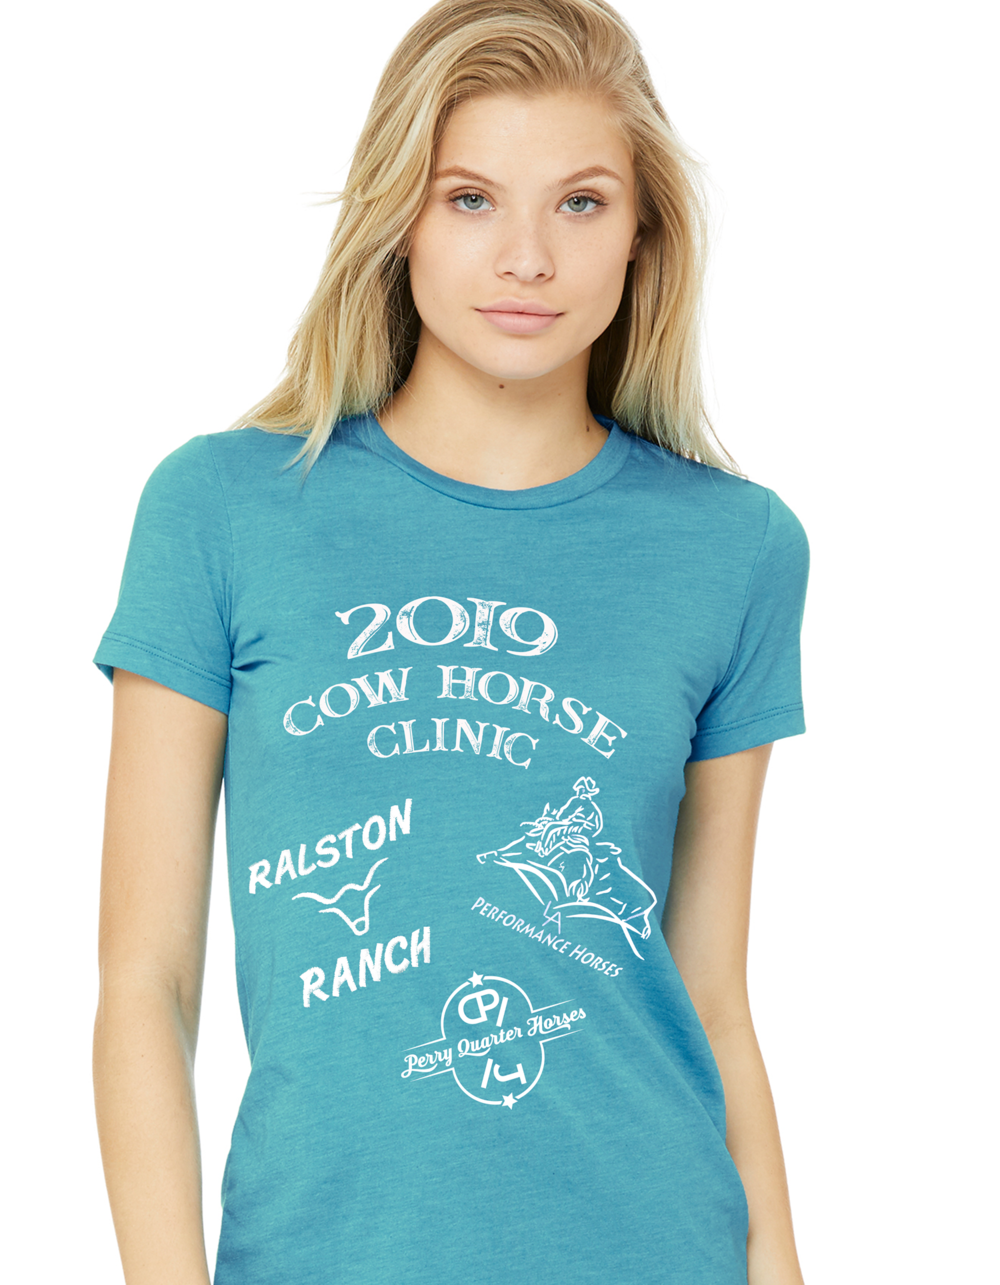 clinic tee womans.png